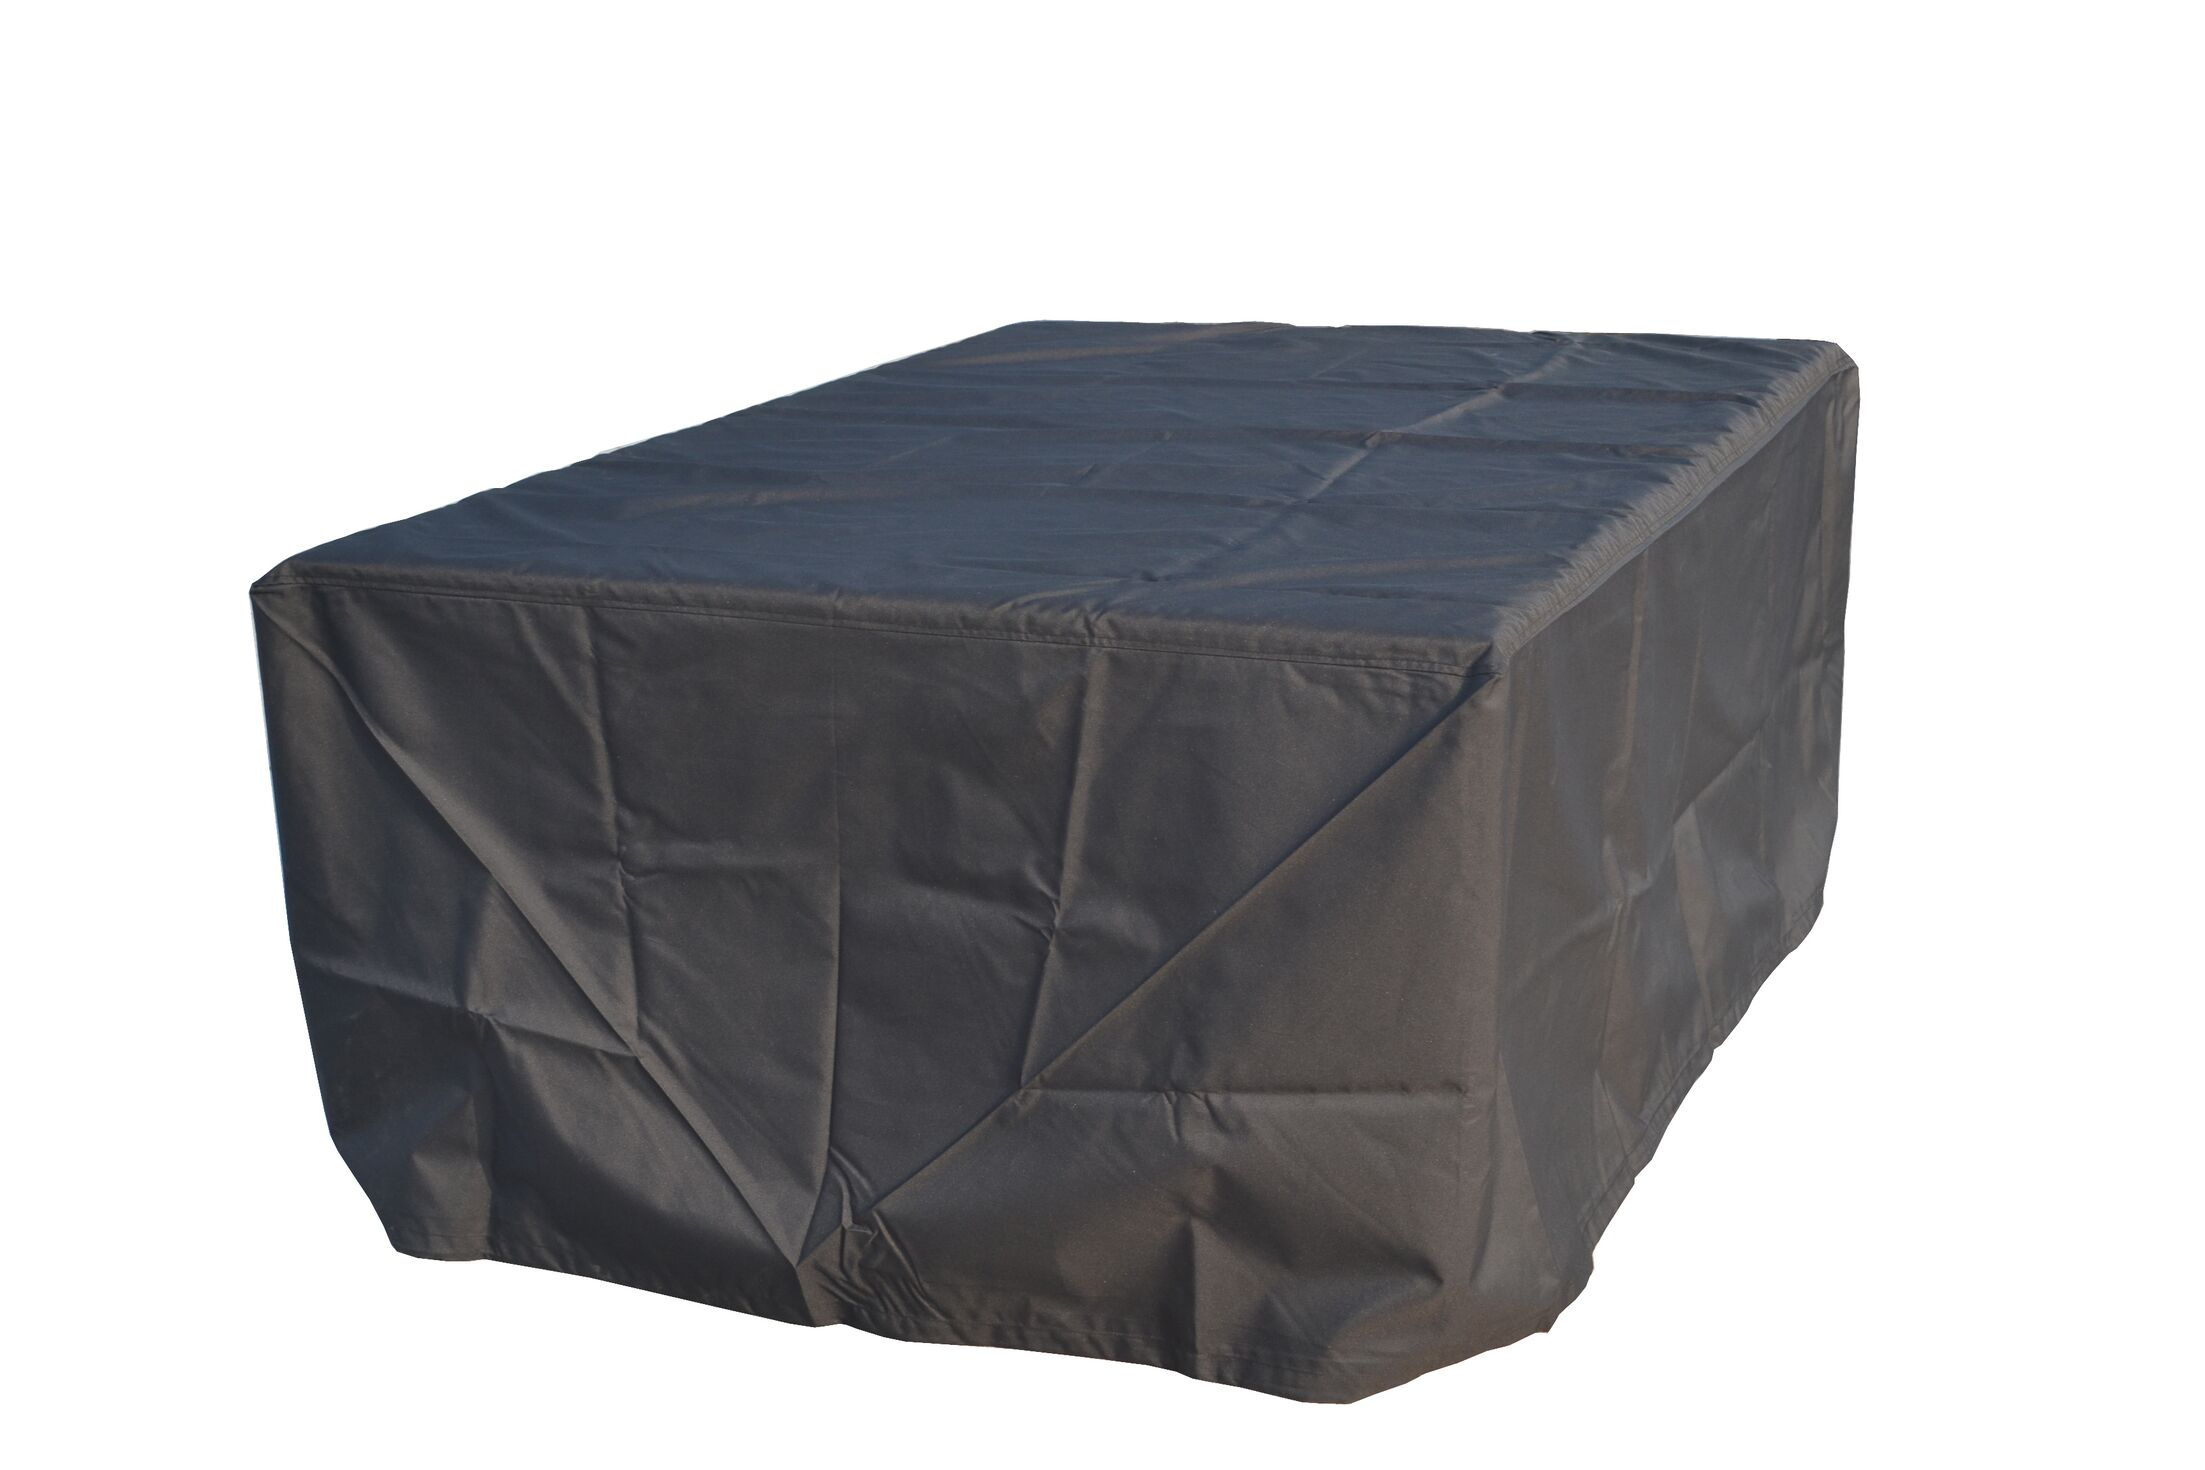 Water Resistant Patio Table Cover Size: 22.83